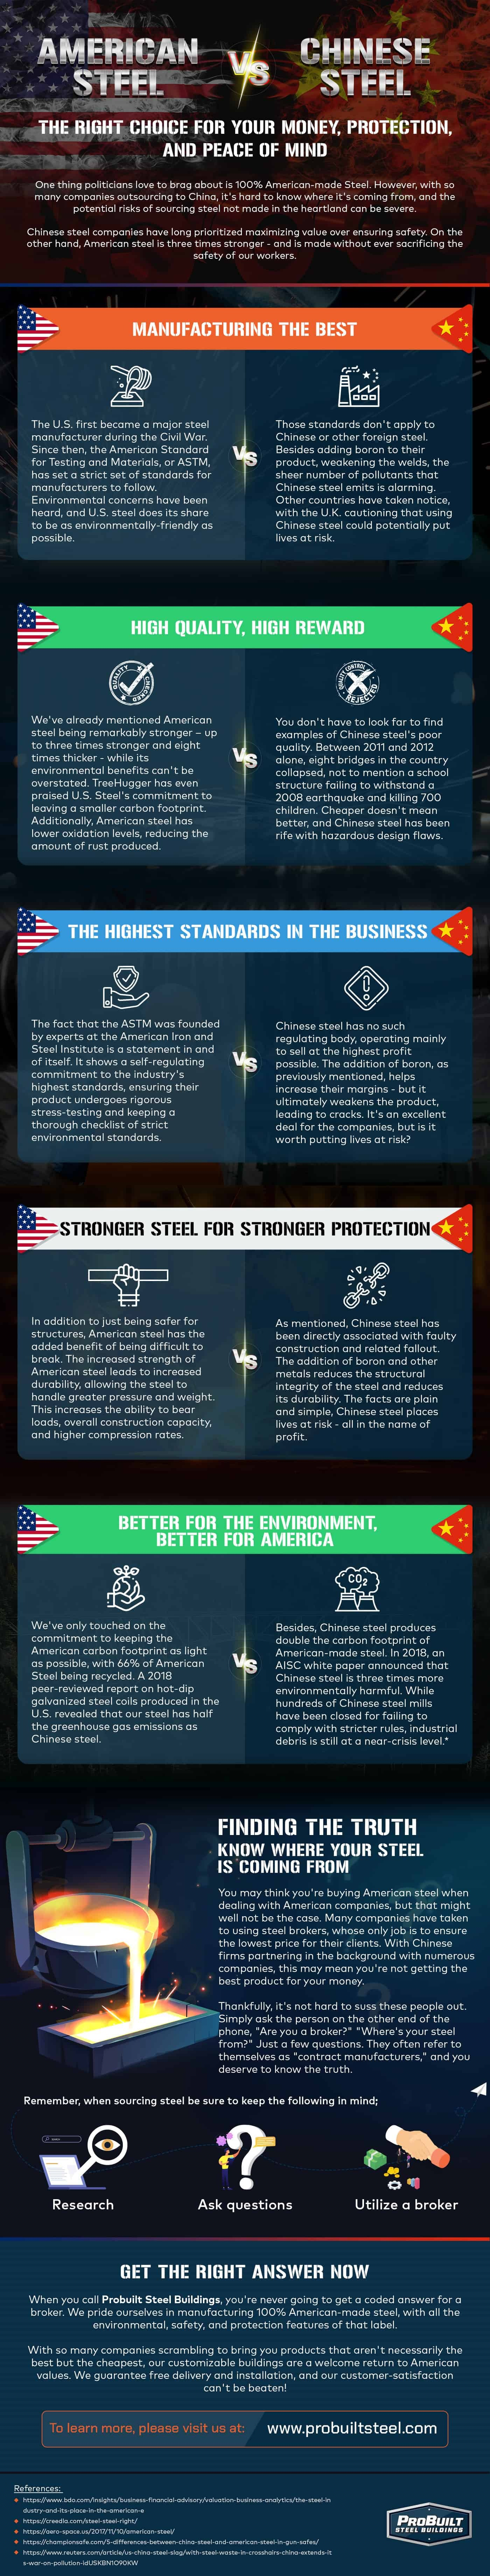 thumbnail for American vs. Chinese Steel: Patriotism and Safety Over Price